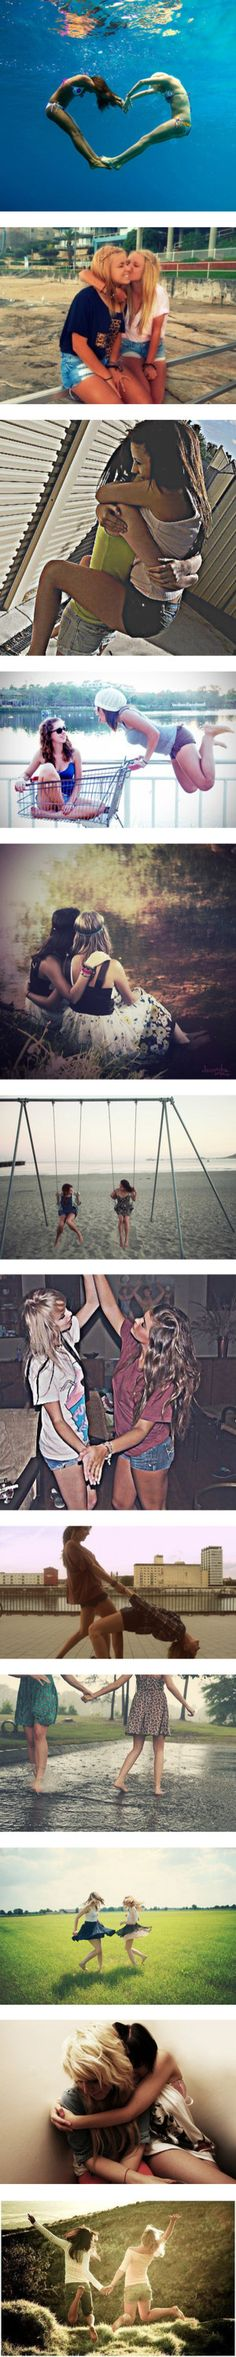 """what me and my best friends love to do"" by jannethgarcia ❤ liked on Polyvore"